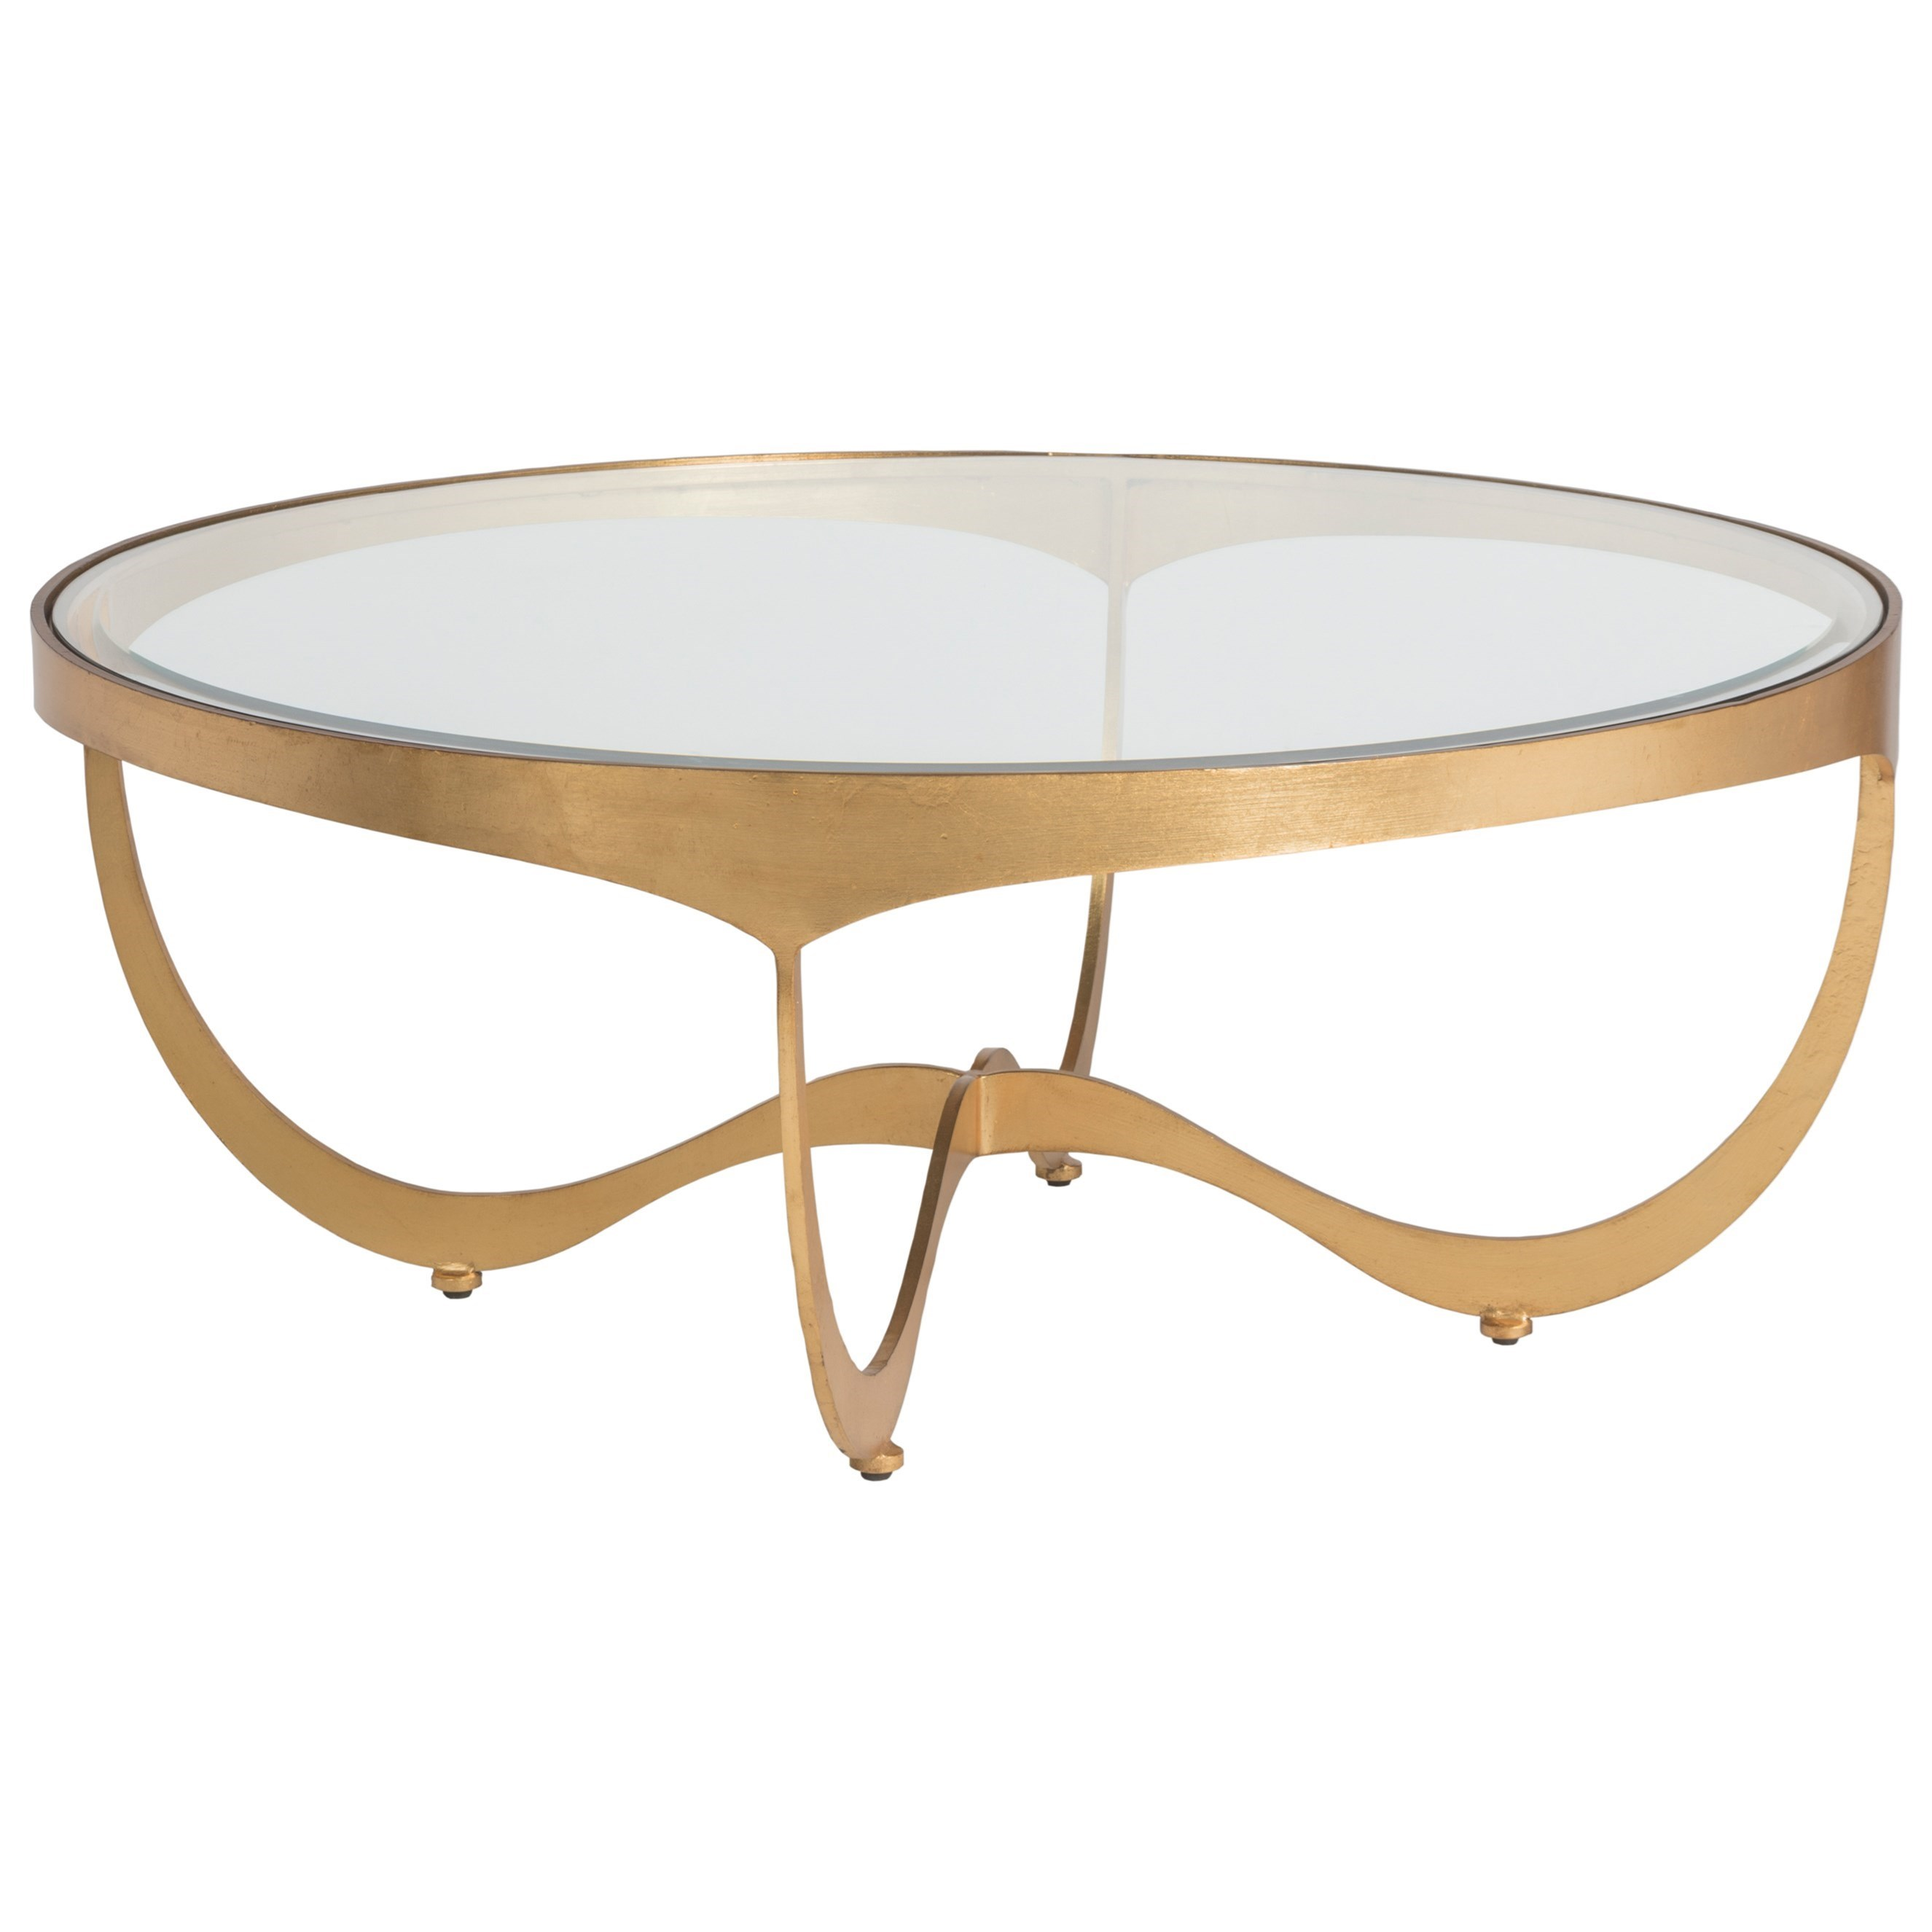 Metal Designs Sophie Round Cocktail Table by Artistica at Alison Craig Home Furnishings